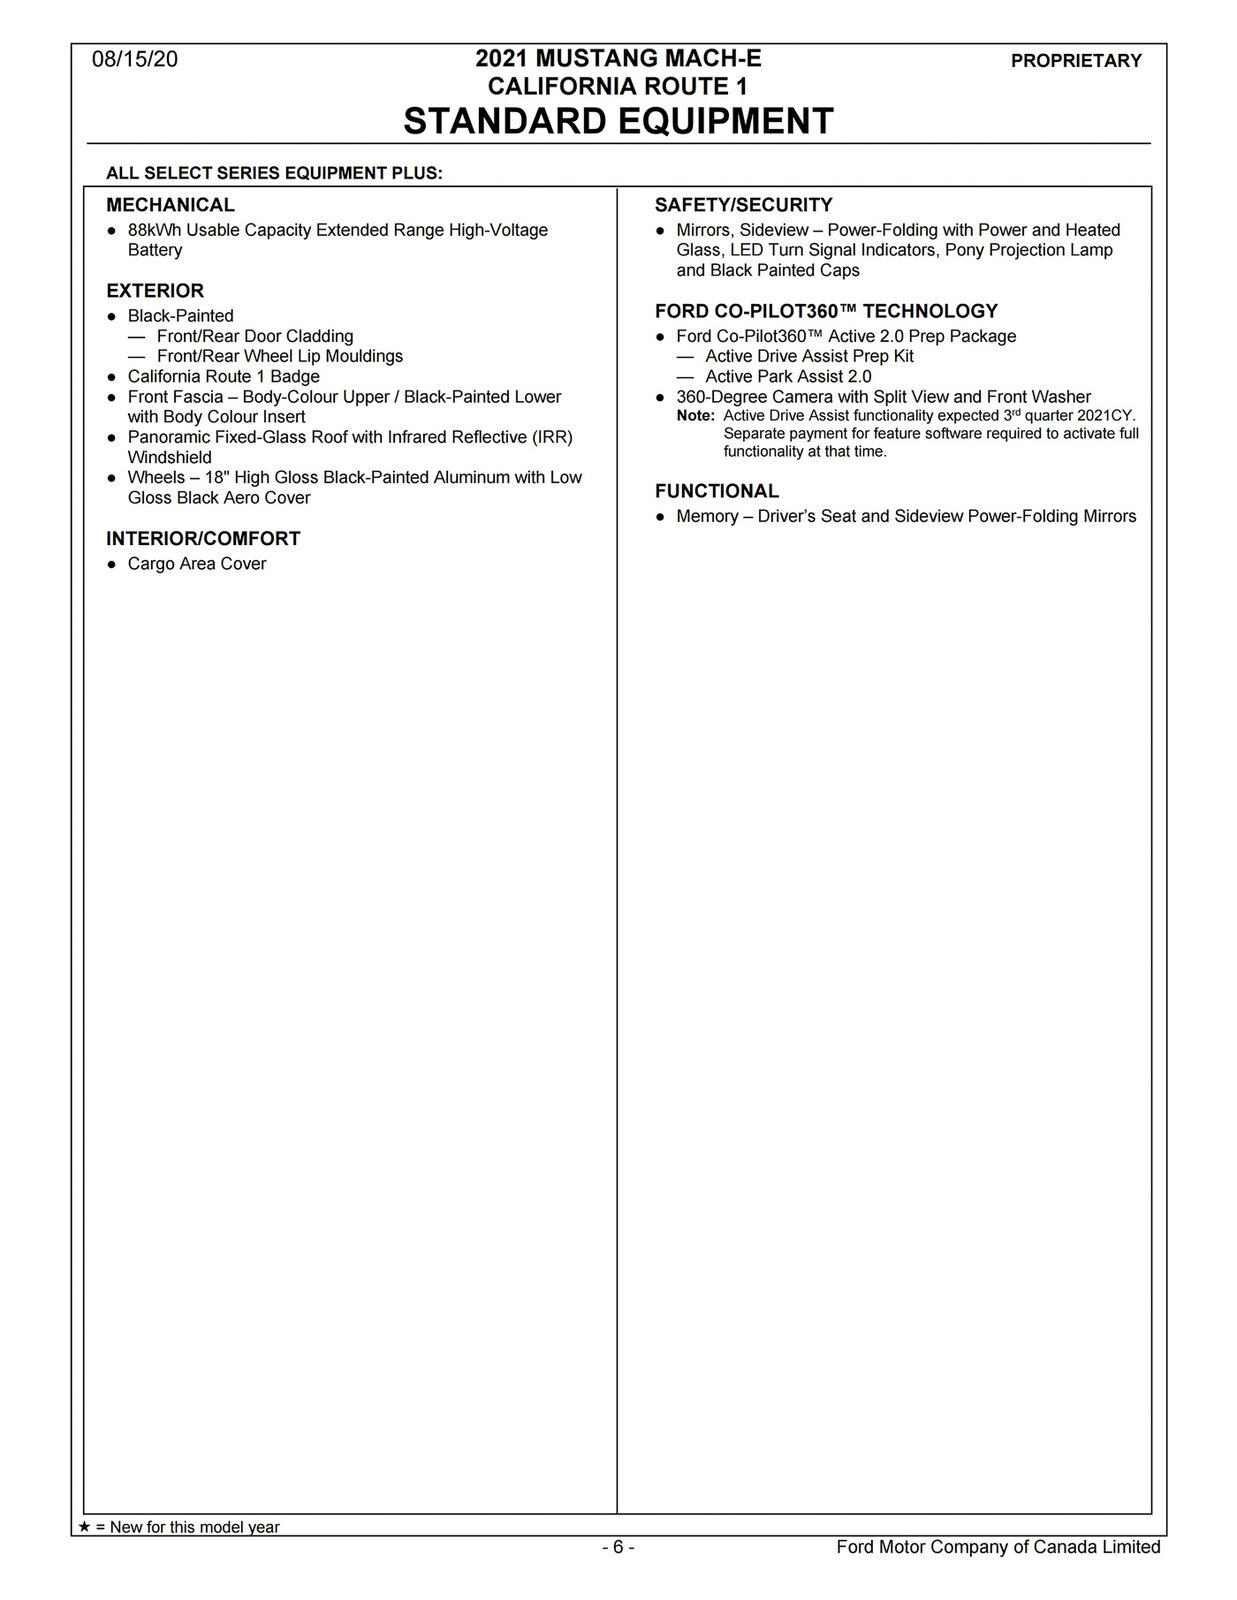 2021 Mustang Mach-E Order Guide (Canada)_page_06.jpg